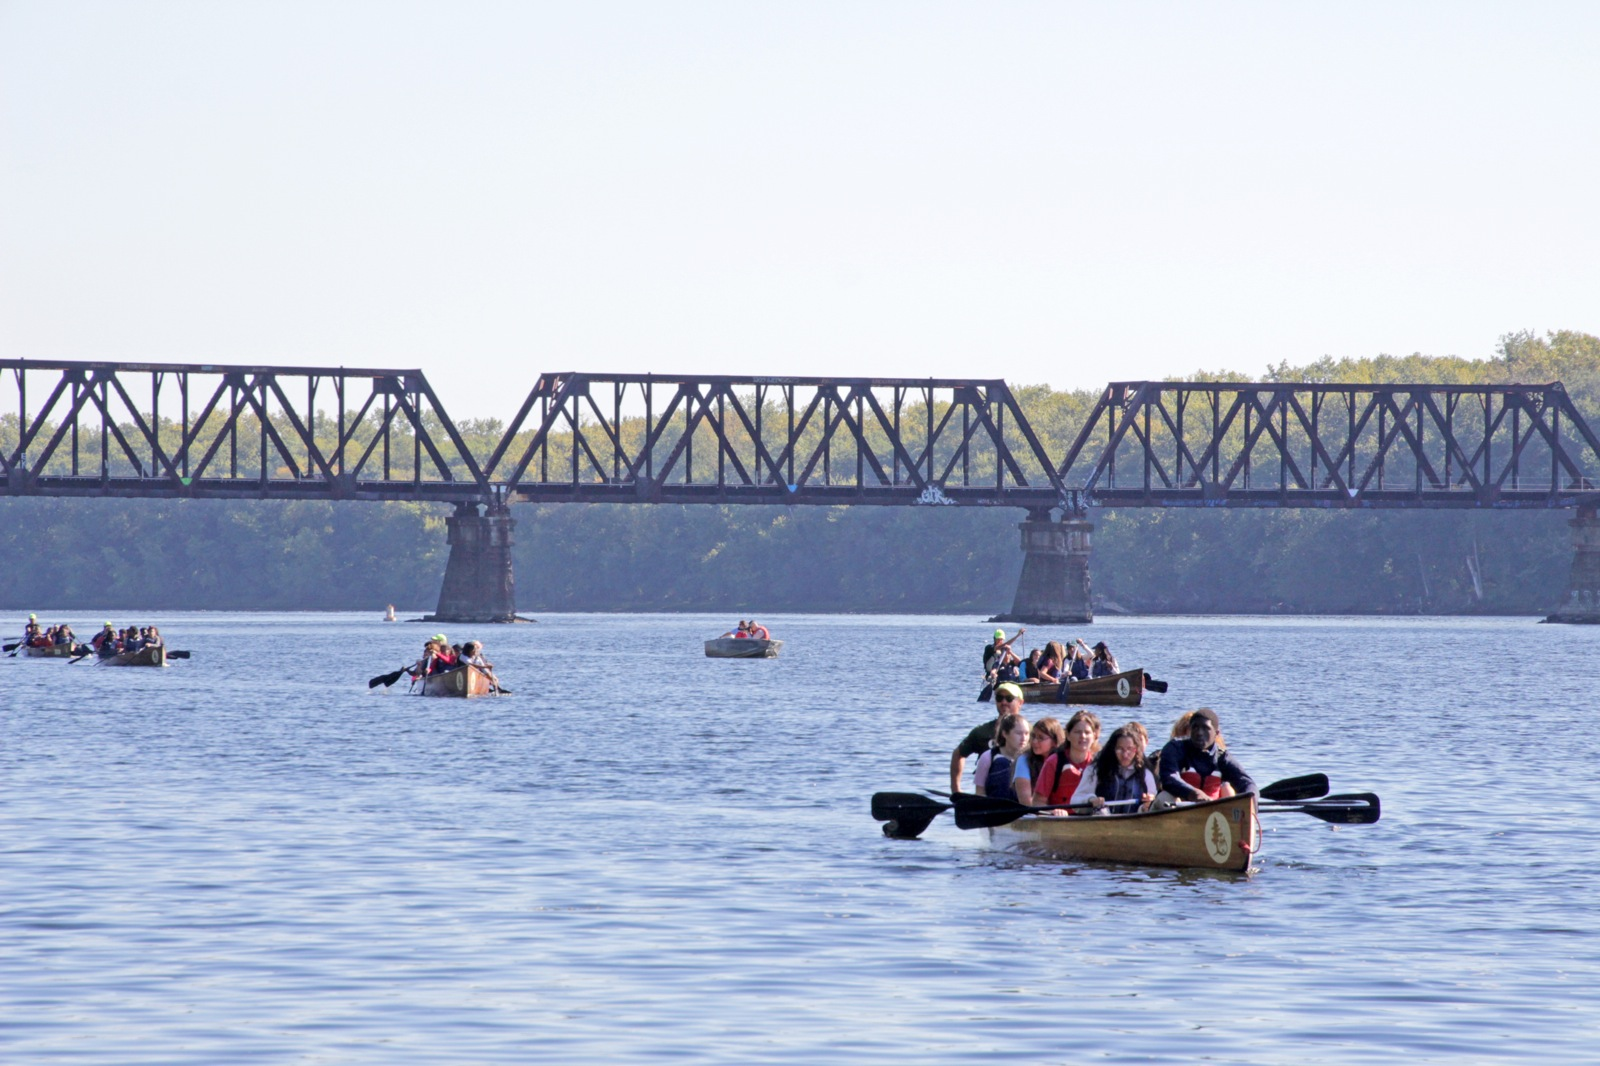 6 Voyageur canoes are spread along the river as they pass a bridge on a wide river